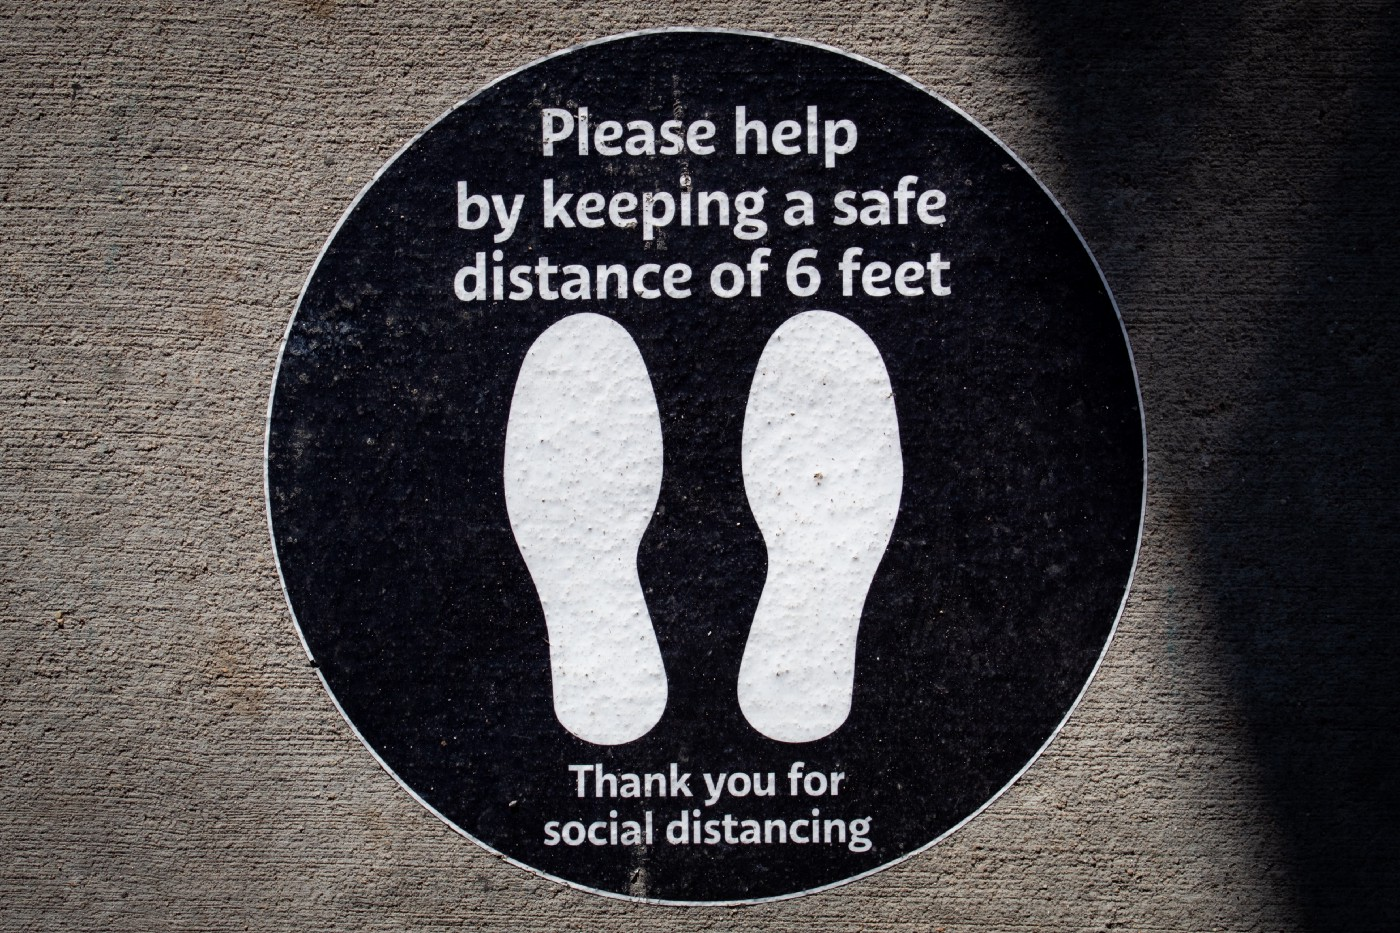 Photo of feet graphic with text please help by keeping a safe stance of 6 feet. Thank you for social distancing. Photo by Elizabeth McDaniel on Unsplash